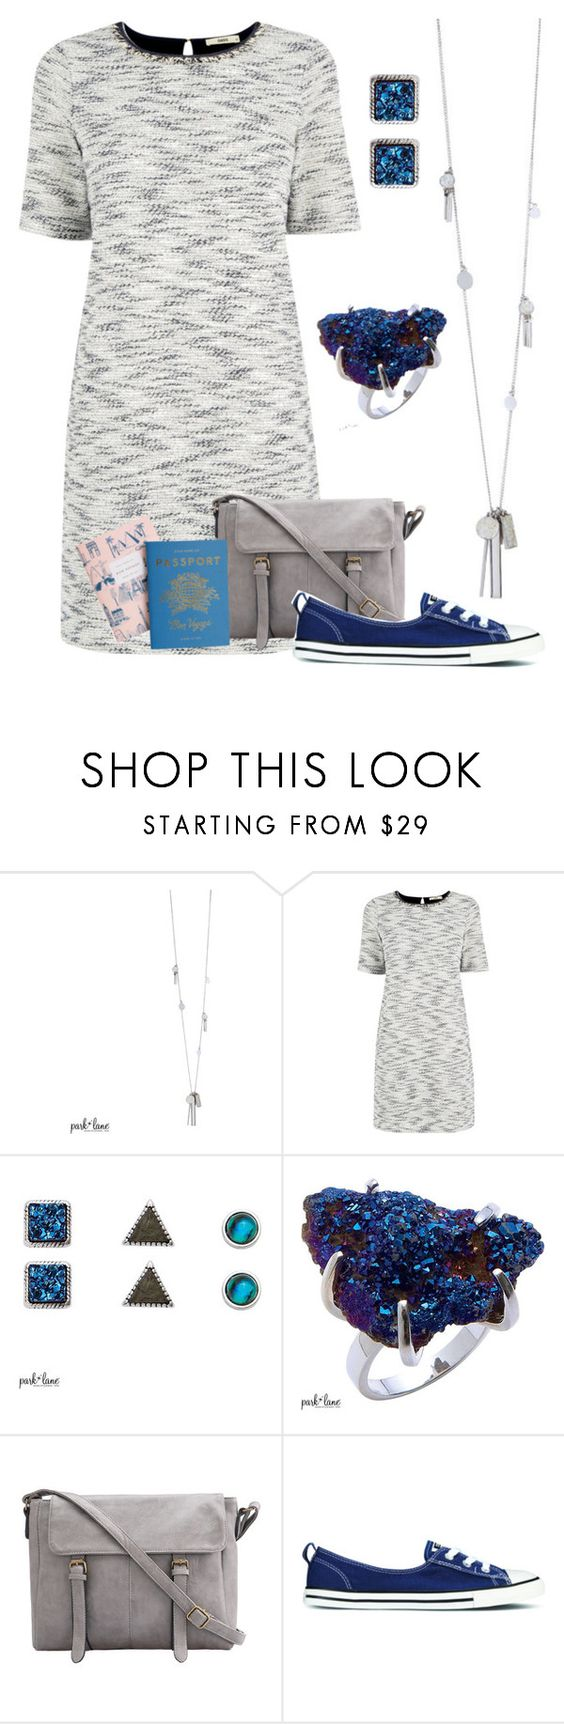 """""""My Park Lane Style"""" by parklanejewelry ❤ liked on Polyvore featuring Oasis and Converse"""